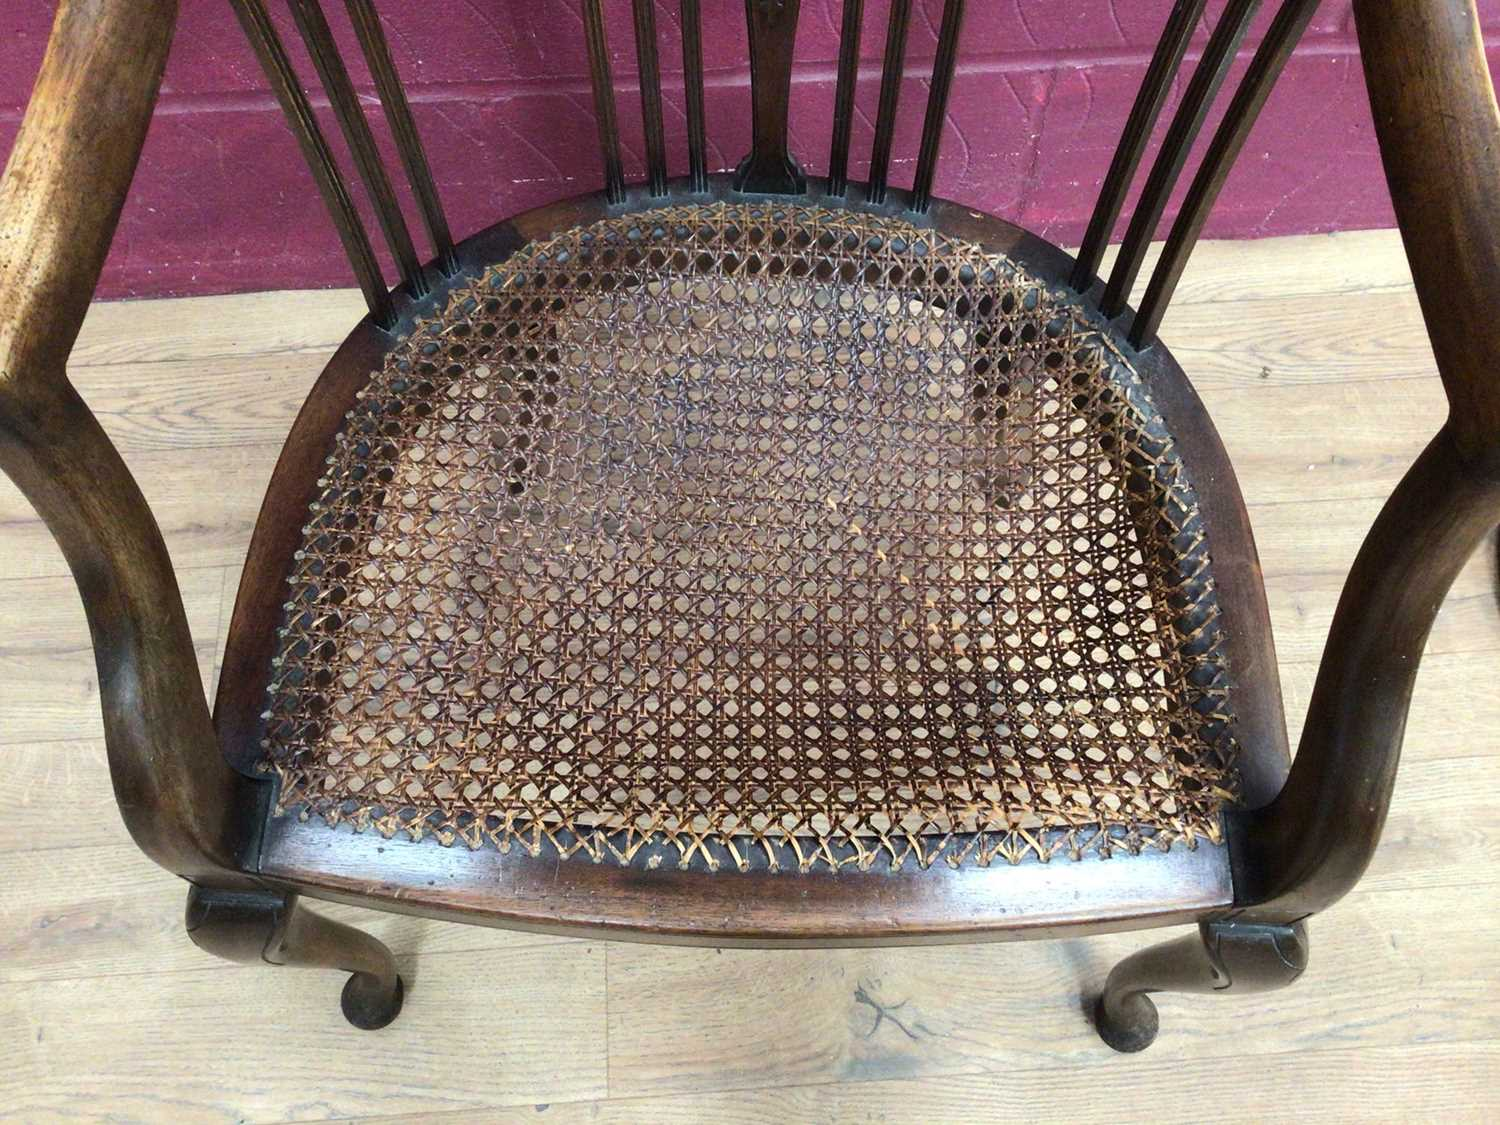 Edwardian mahogany tub chair with caned seat and a mahogany framed oval wall mirror (2) - Image 6 of 6